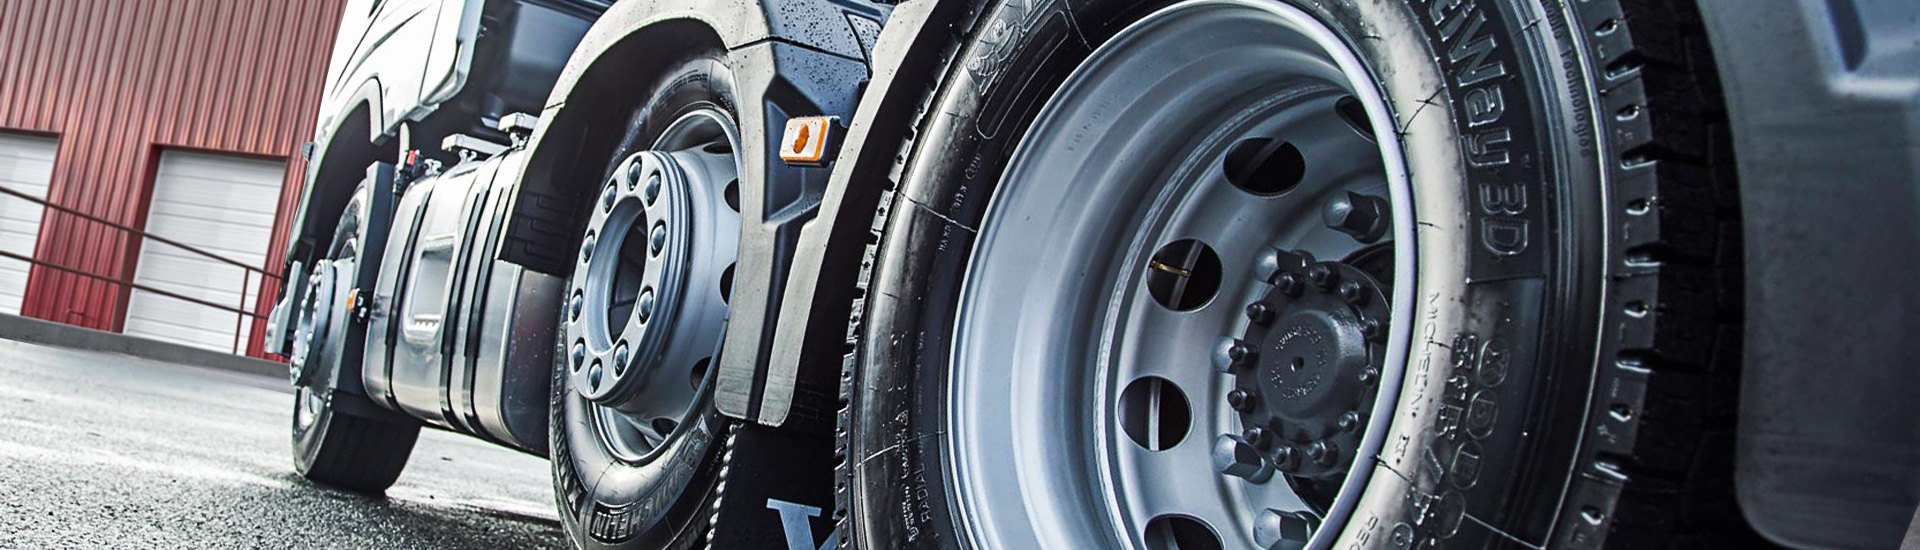 Semi Truck Wheels & Tires